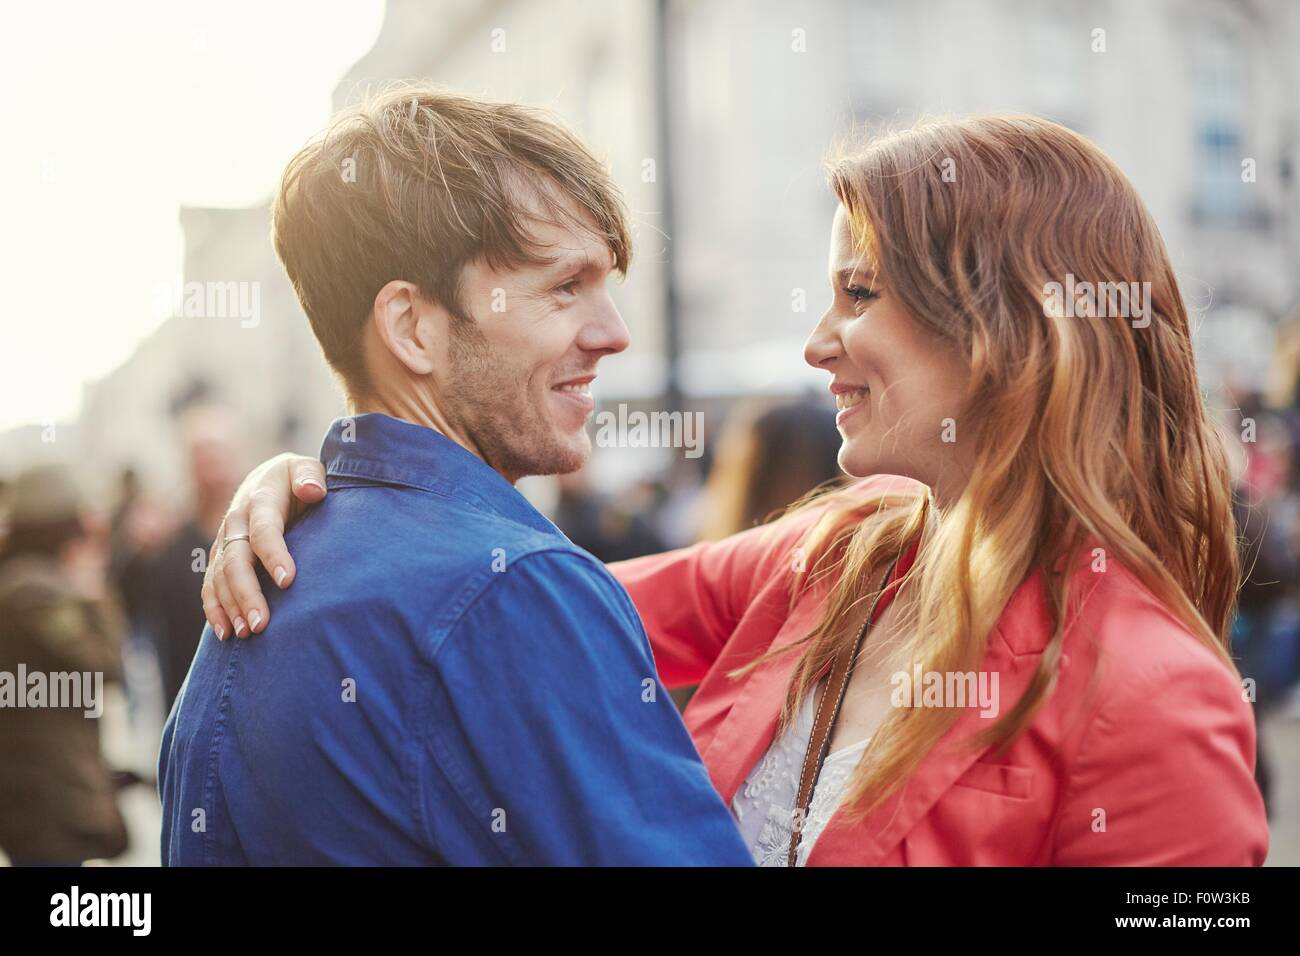 Romantic couple face to face on street, London, UK - Stock Image